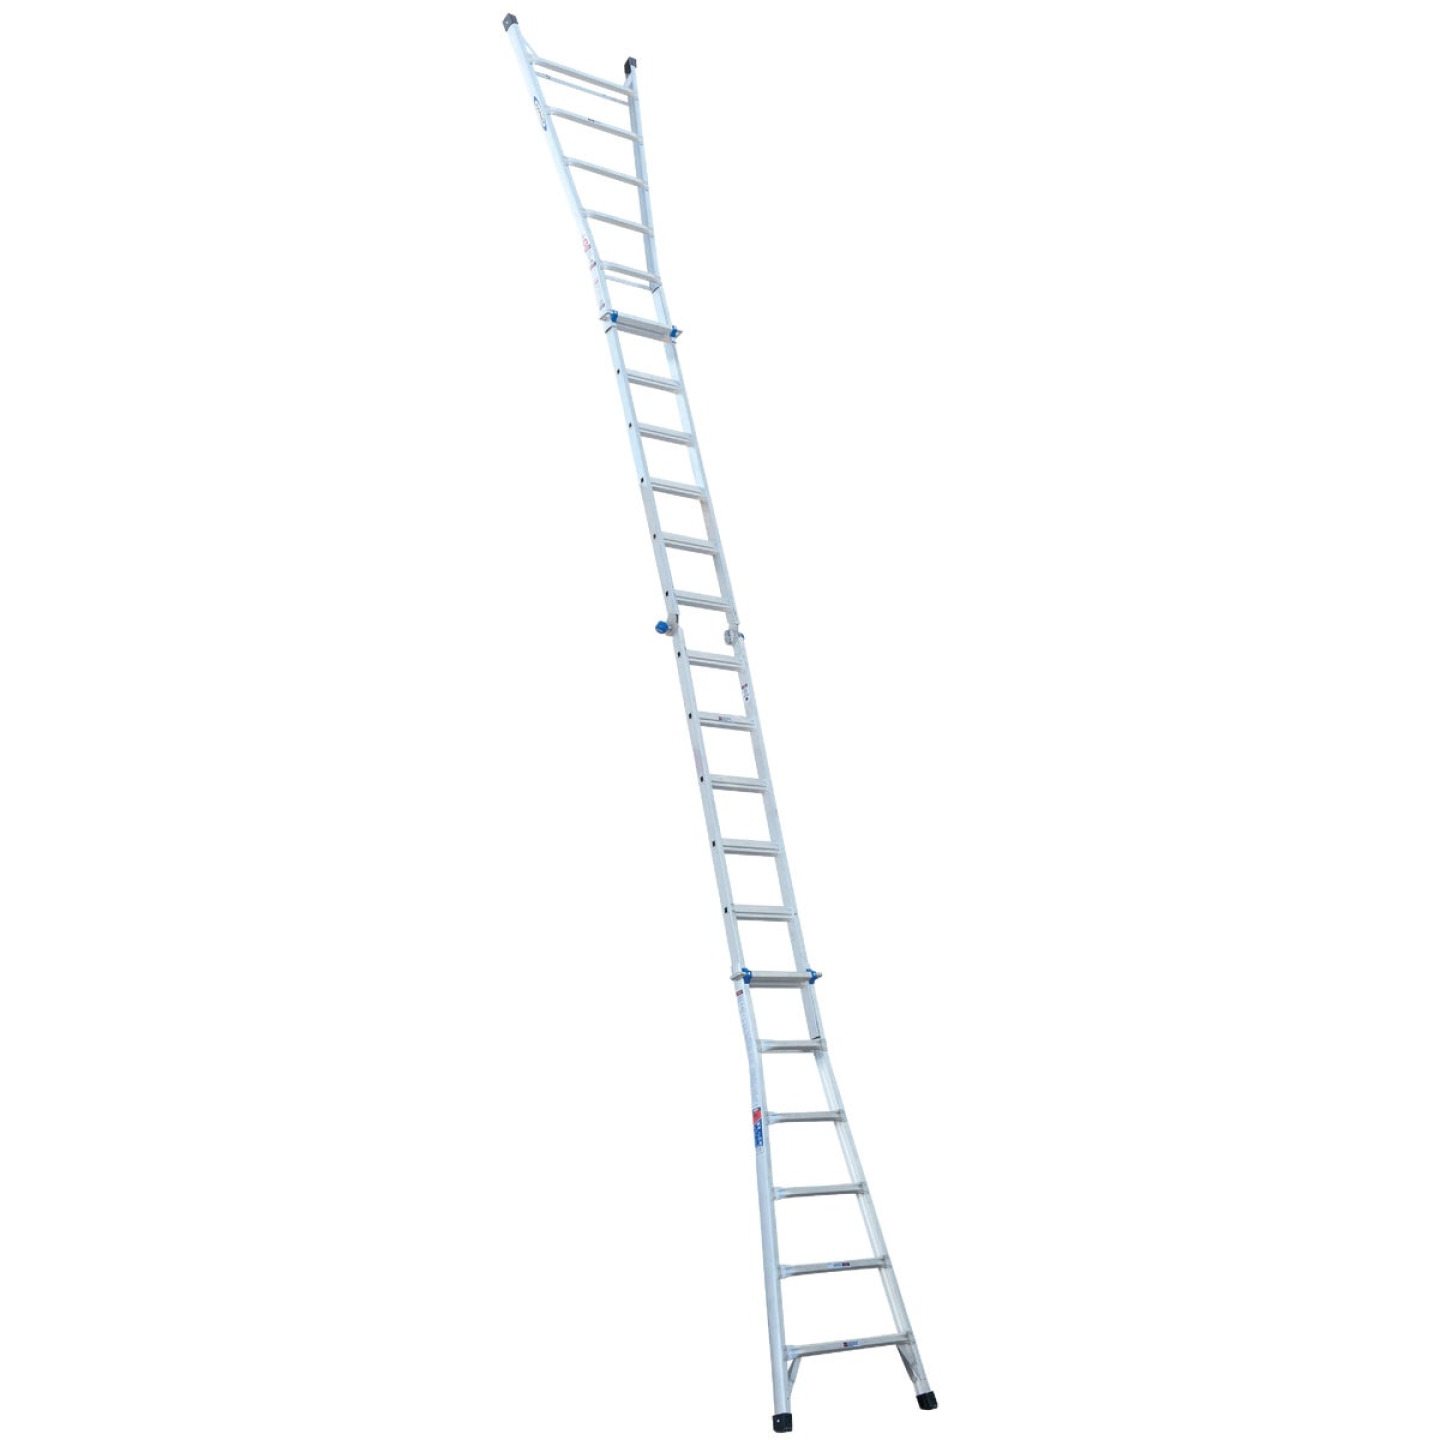 Werner 26 Ft. Aluminum Multi-Position Telescoping Ladder with 300 Lb. Load Capacity Type IA Ladder Rating Image 7